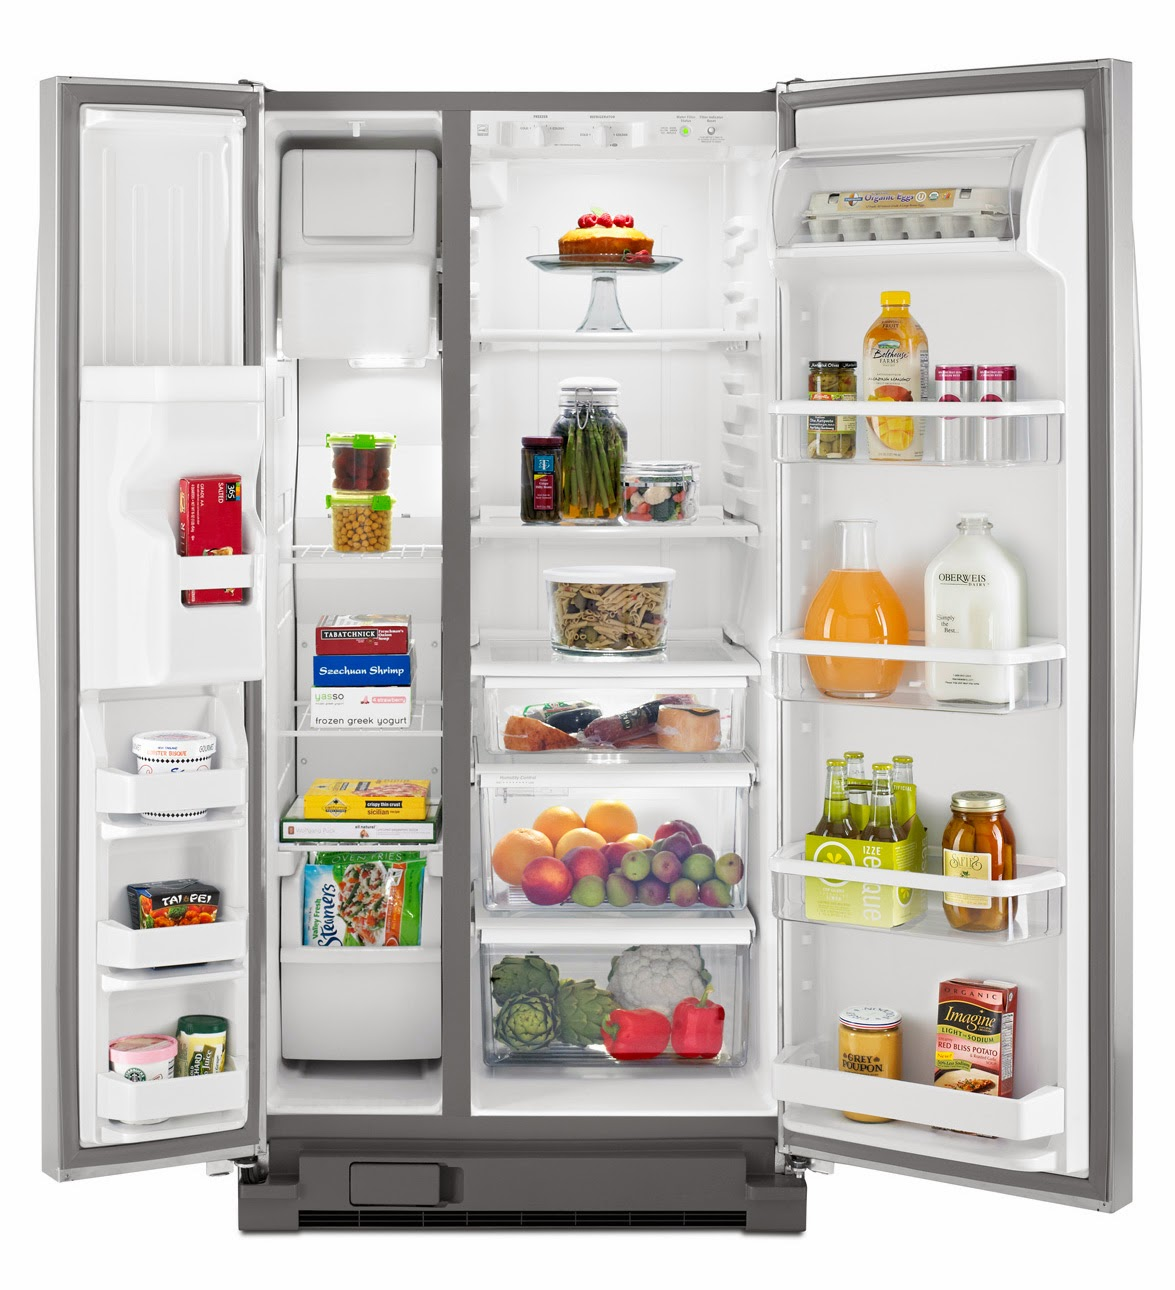 Whirlpool Refrigerator Brand 22 Cubic Foot Side By Side